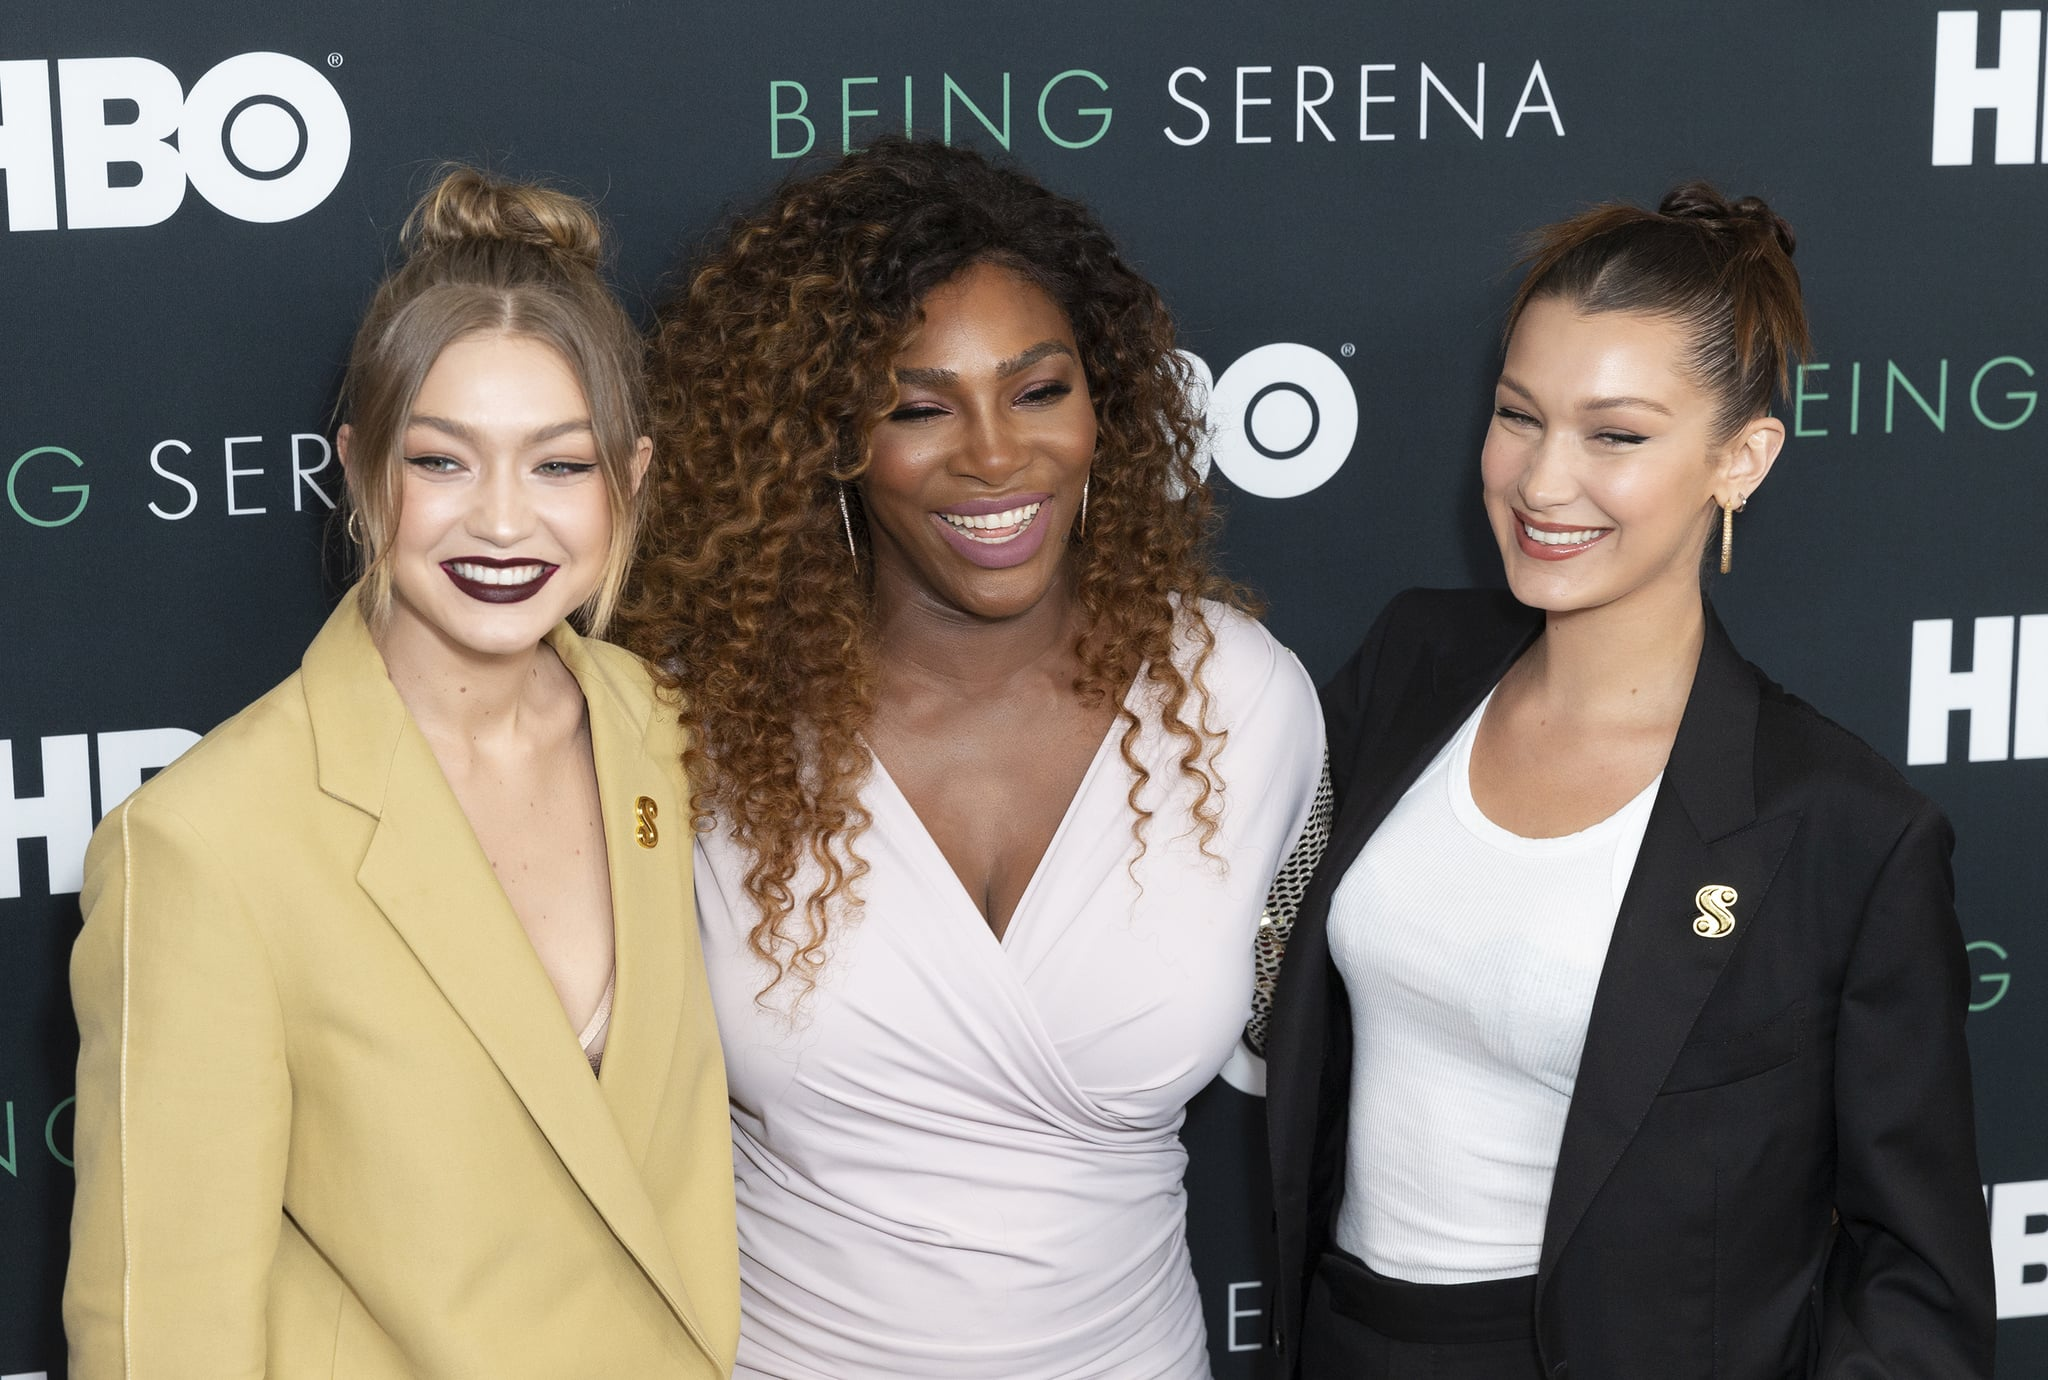 TIME WARNER CENTER, NEW YORK, UNITED STATES - 2018/04/25: Gigi Hadid, Serena Williams and Bella Hadid attend premiere HBO documentary Being Serena at Time Warner Center. (Photo by Lev Radin/Pacific Press/LightRocket via Getty Images)